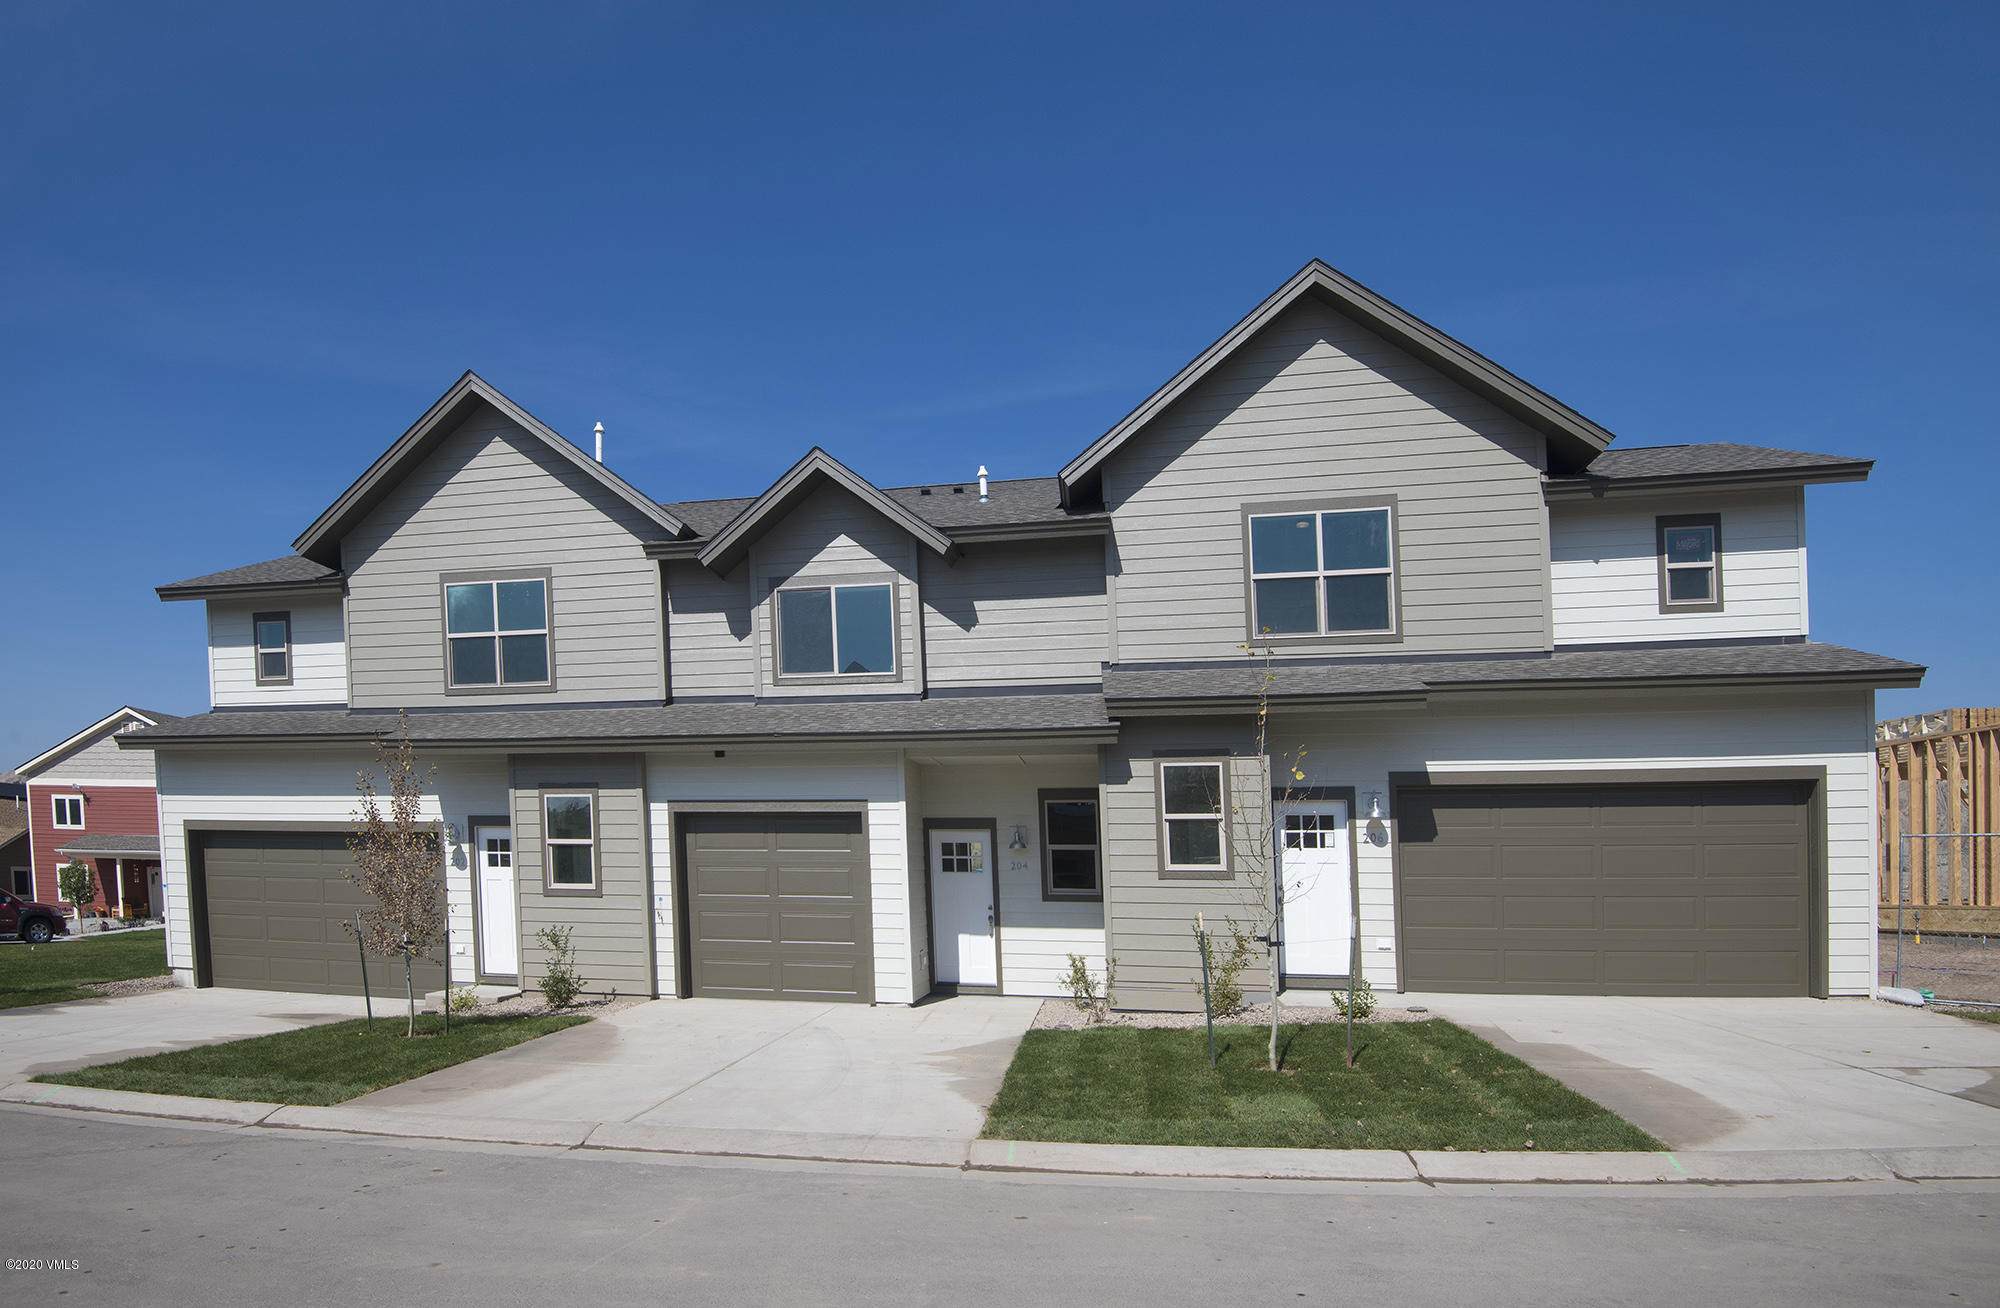 BRAND NEW TOWNHOME! Well-designed, site-built, 3 bedroom, 2.5 bath home with an attached 2-car garage. Incredibly convenient location close to Costco, Gypsum Rec Ctr, and Eagle County Airport. Only minutes to world-class recreation of all types. Standard finishes include vaulted ceilings, LVT flooring, laminate countertops, kitchen pantry, & Whirlpool appliances. Upgrades are available as well! Laundry room conveniently located on the bedroom level. This is an end unit & offers plenty of light.https://my.matterport.com/show/?m=Rn94cLY75Qp&brand=0